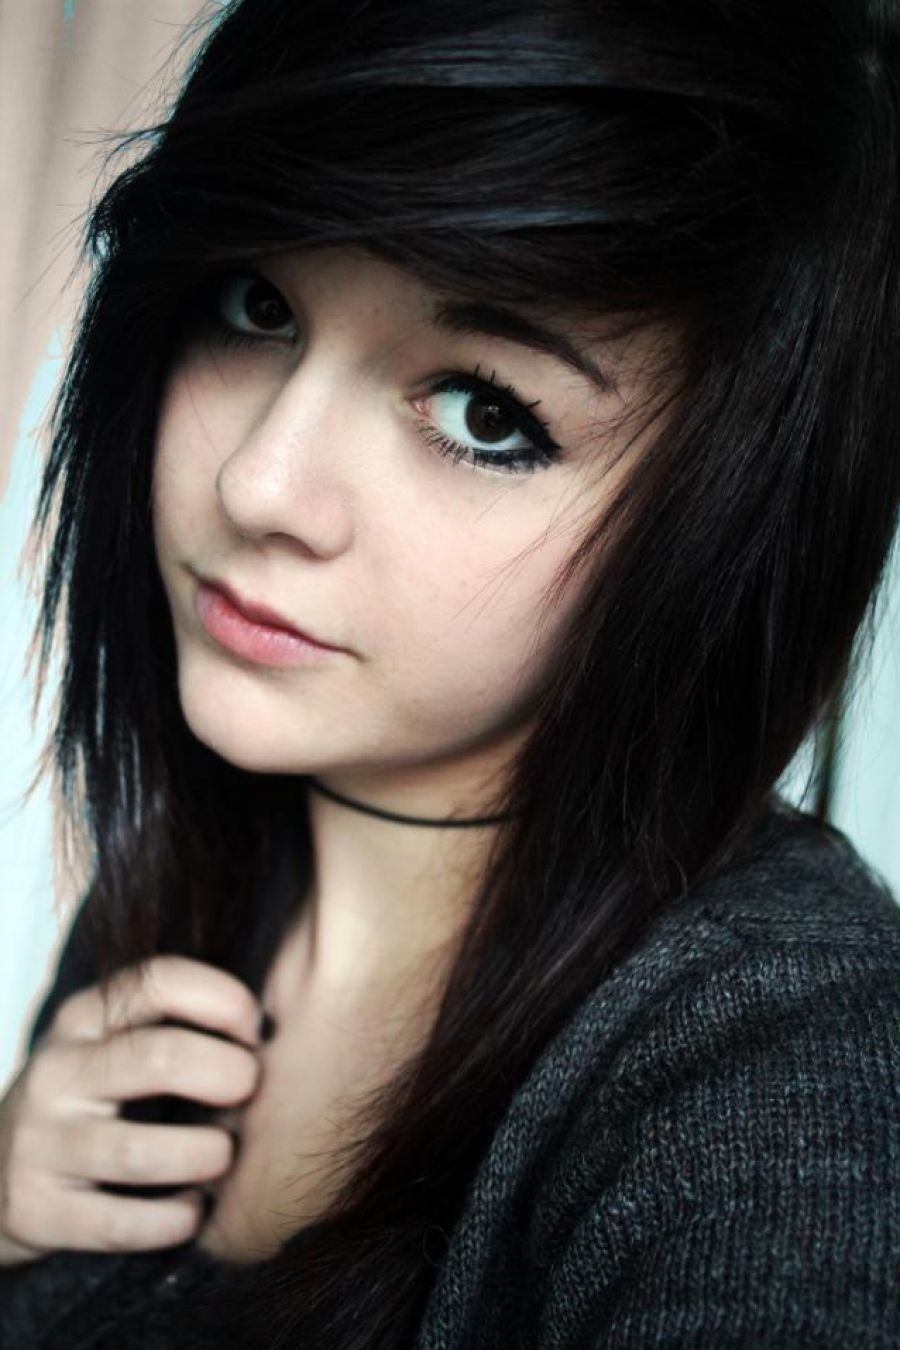 Short Emo Hairstyles For Girls 15 Cute Emo Hairstyles For Girls